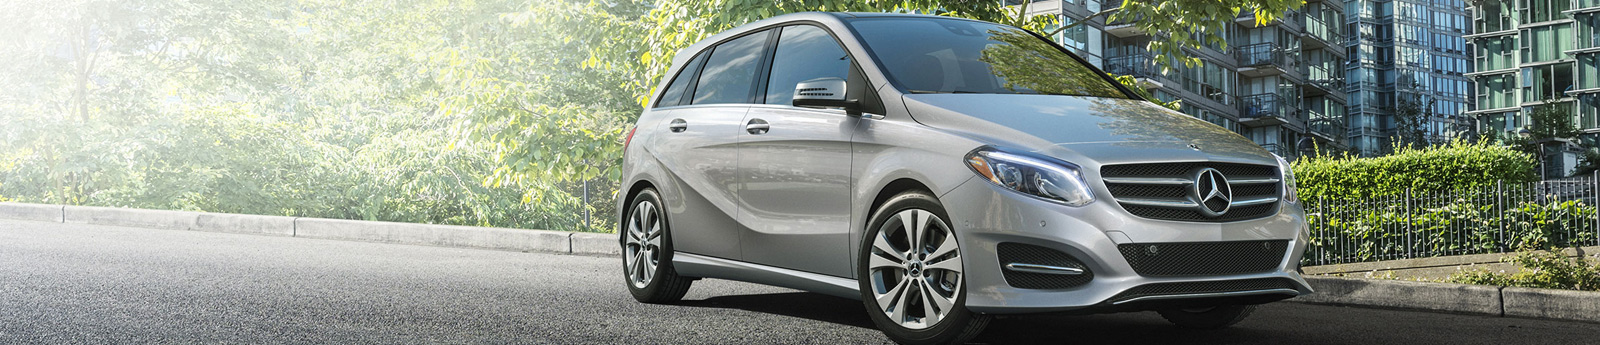 Mercedes-Benz B-Class model